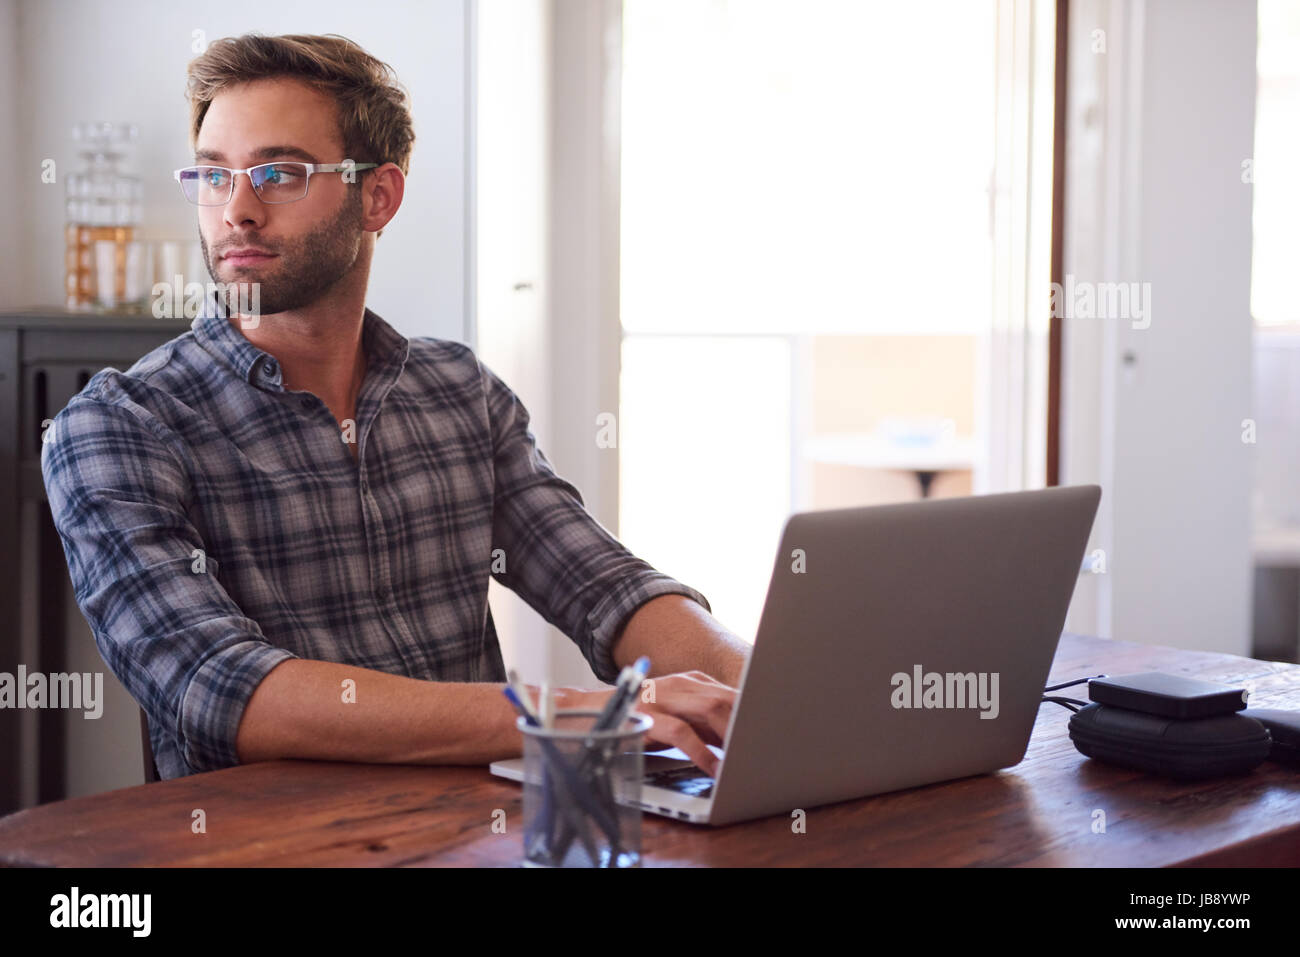 Successful young adult businessman looking back over his shoulder out of a whidow in thought with his hands still - Stock Image